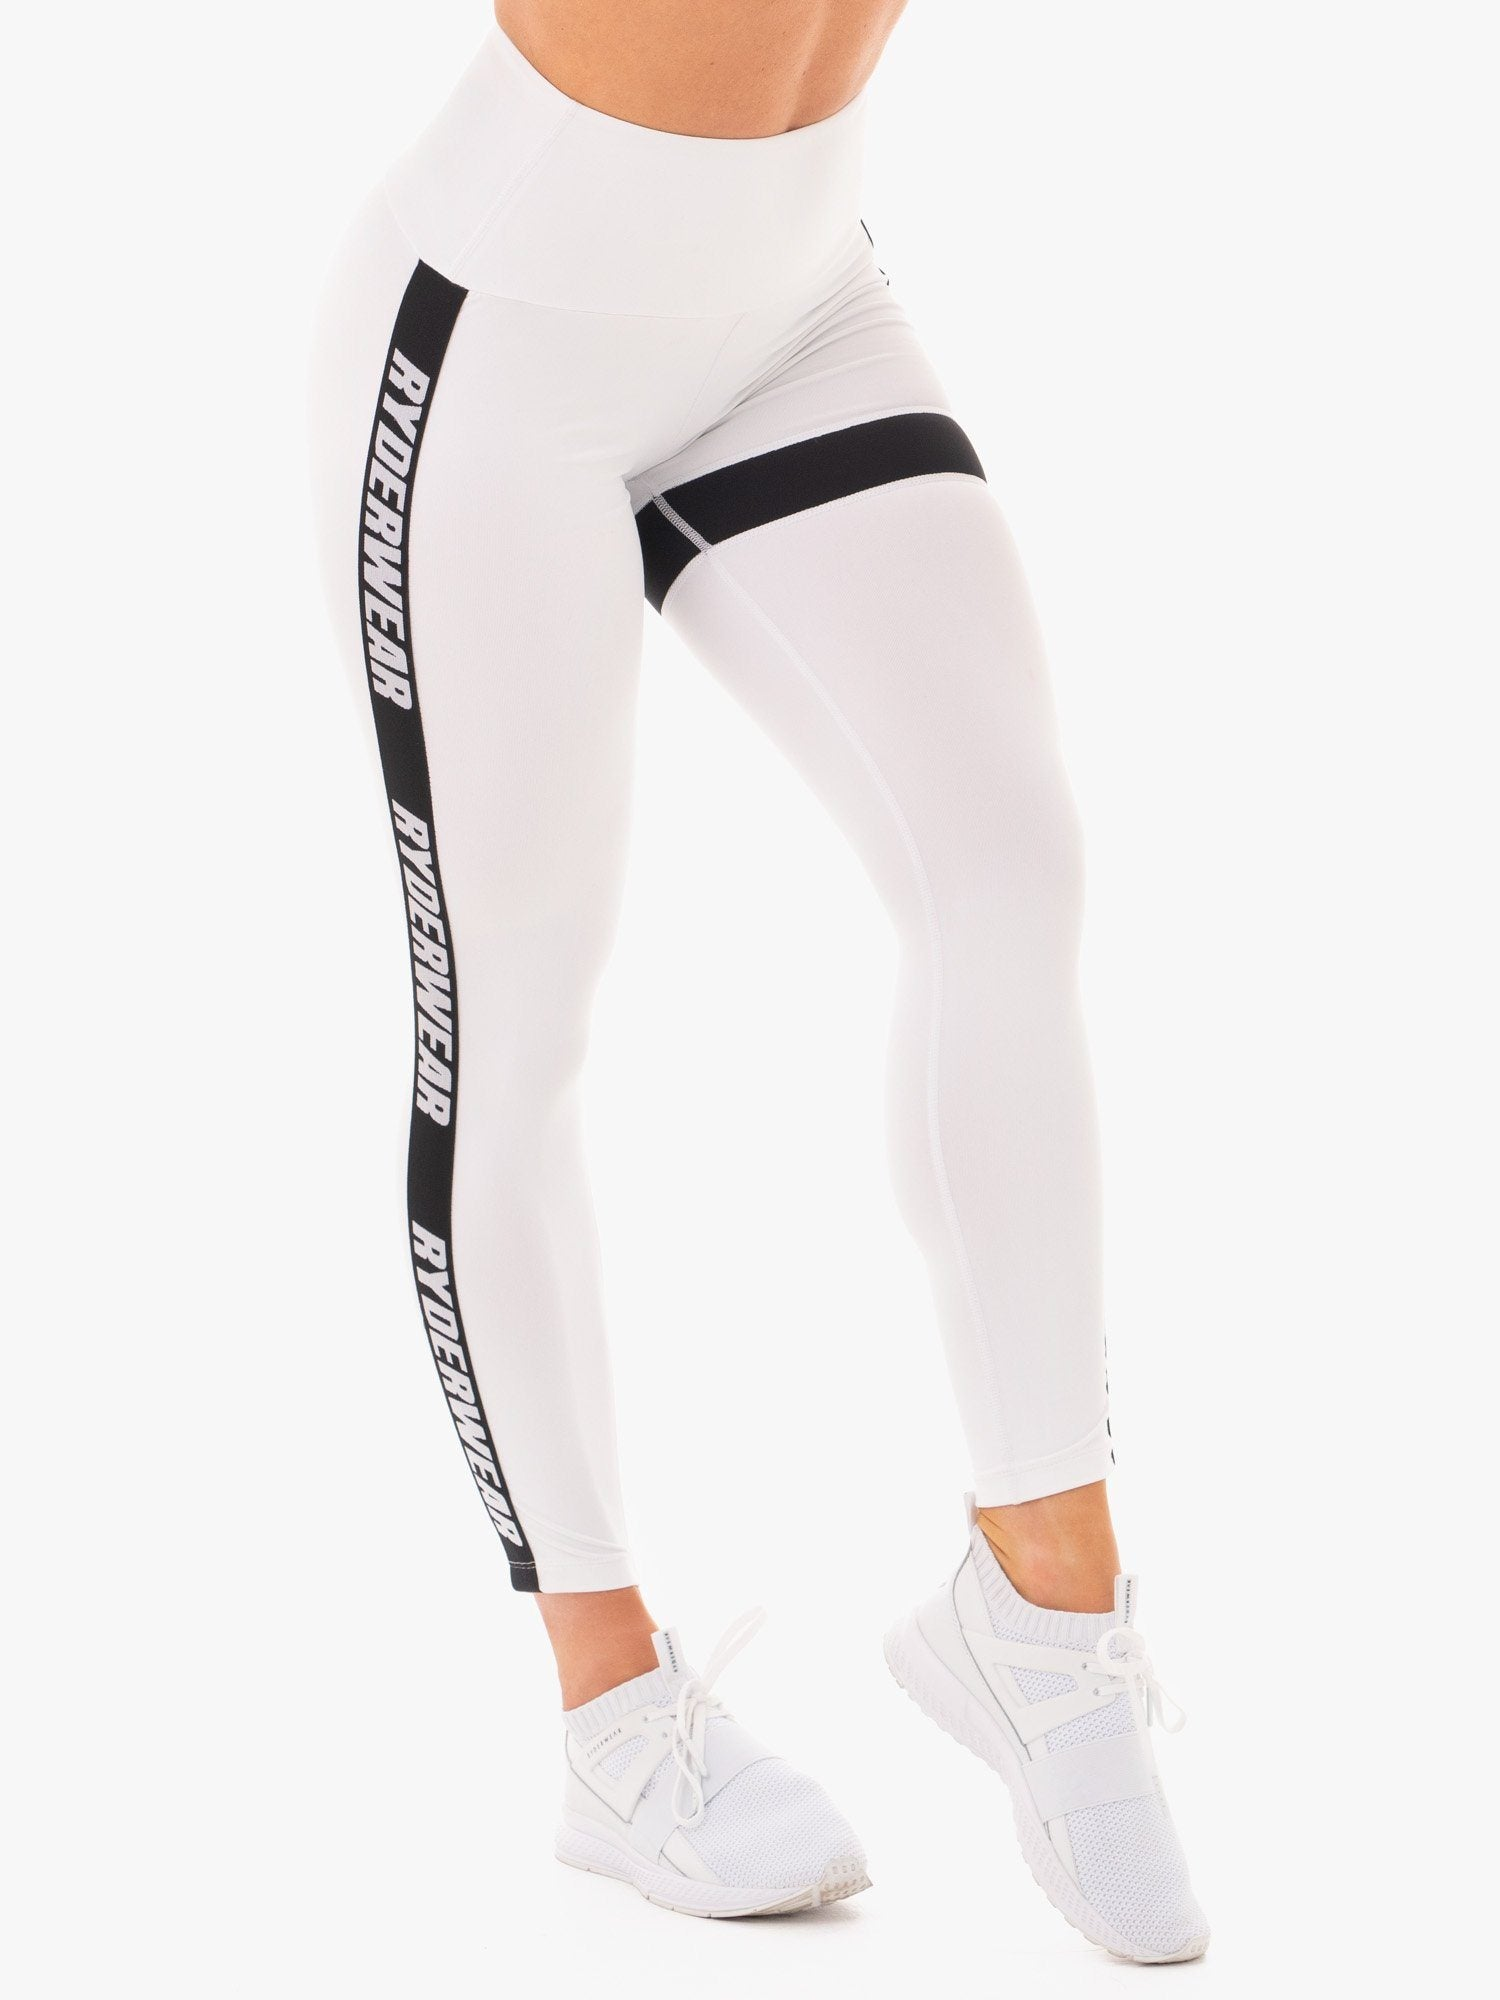 Ryderwear Courtside Scrunch Leggings - White